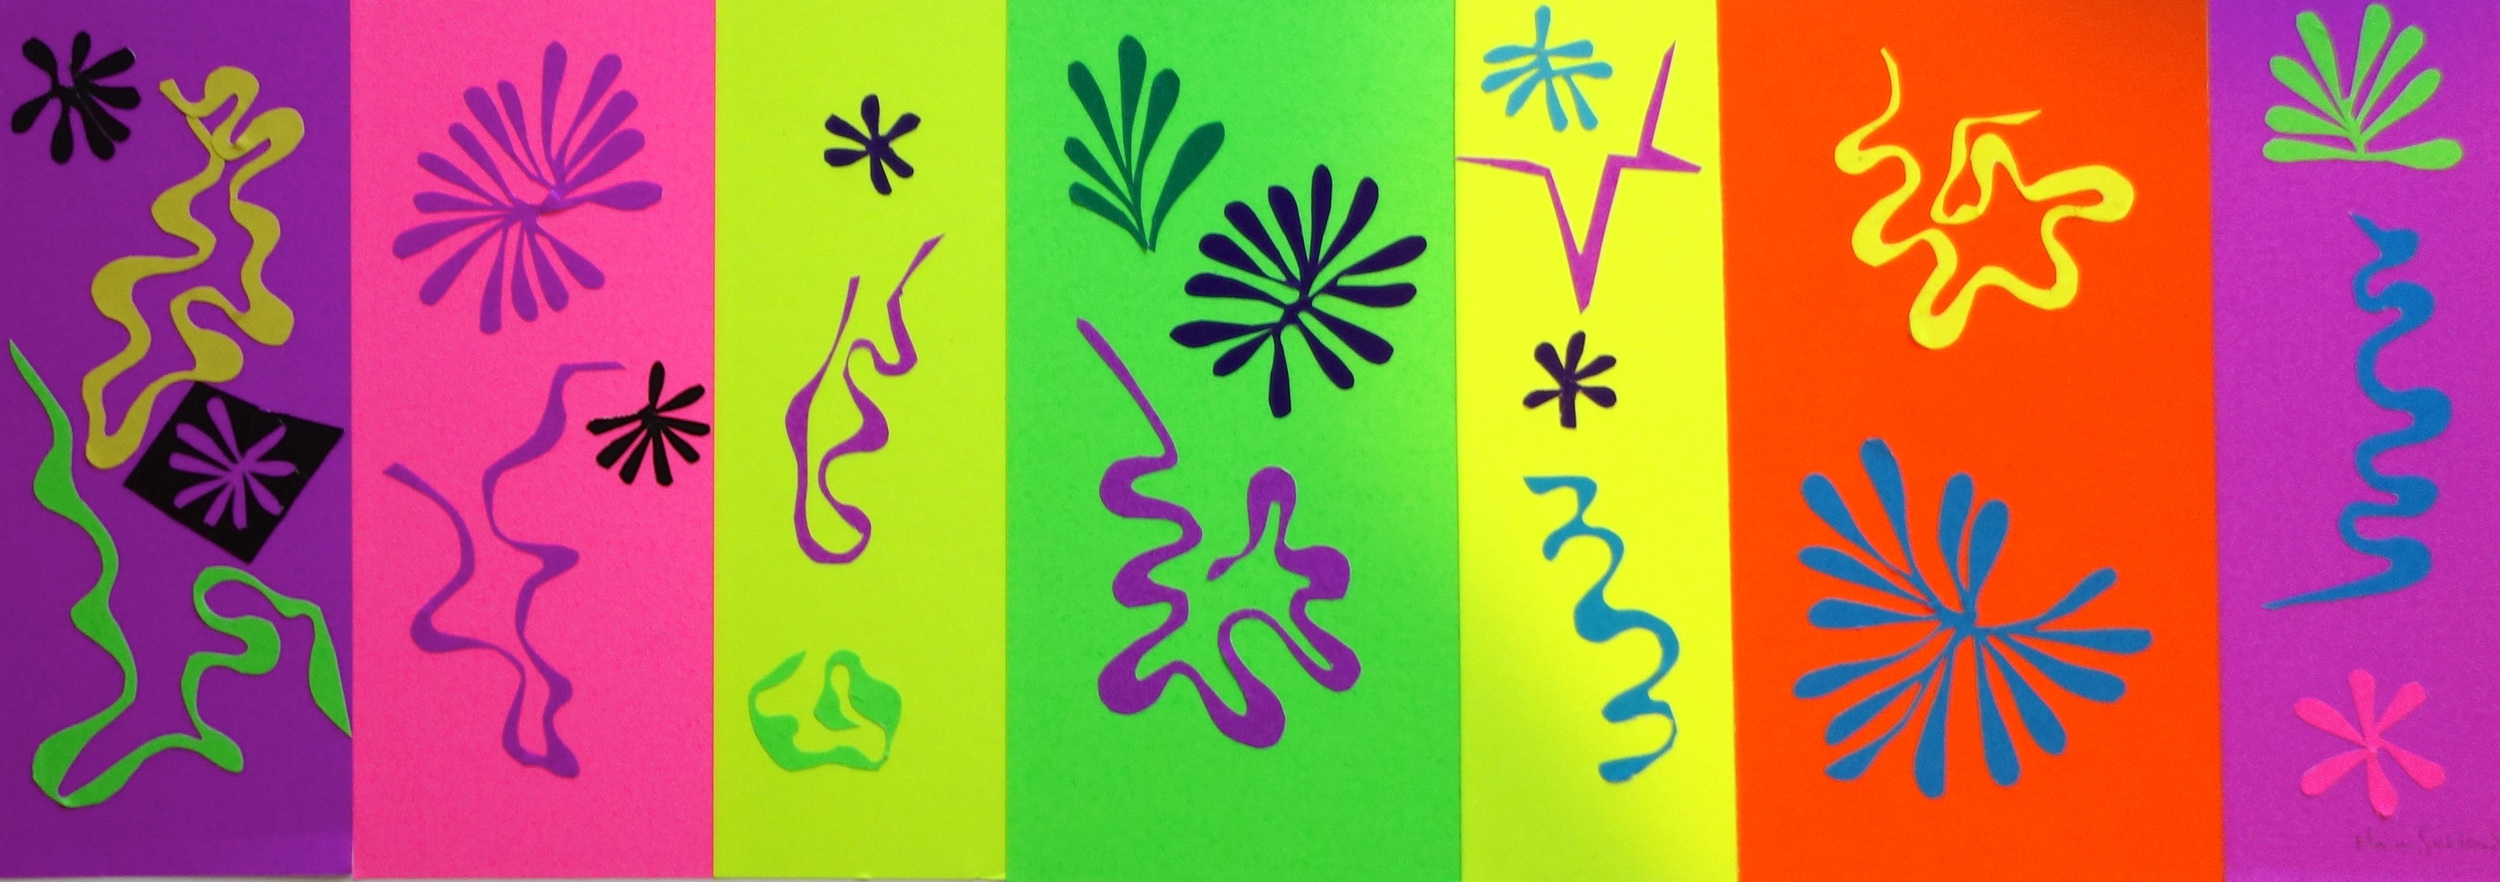 DANCING WITH MATISSE #4